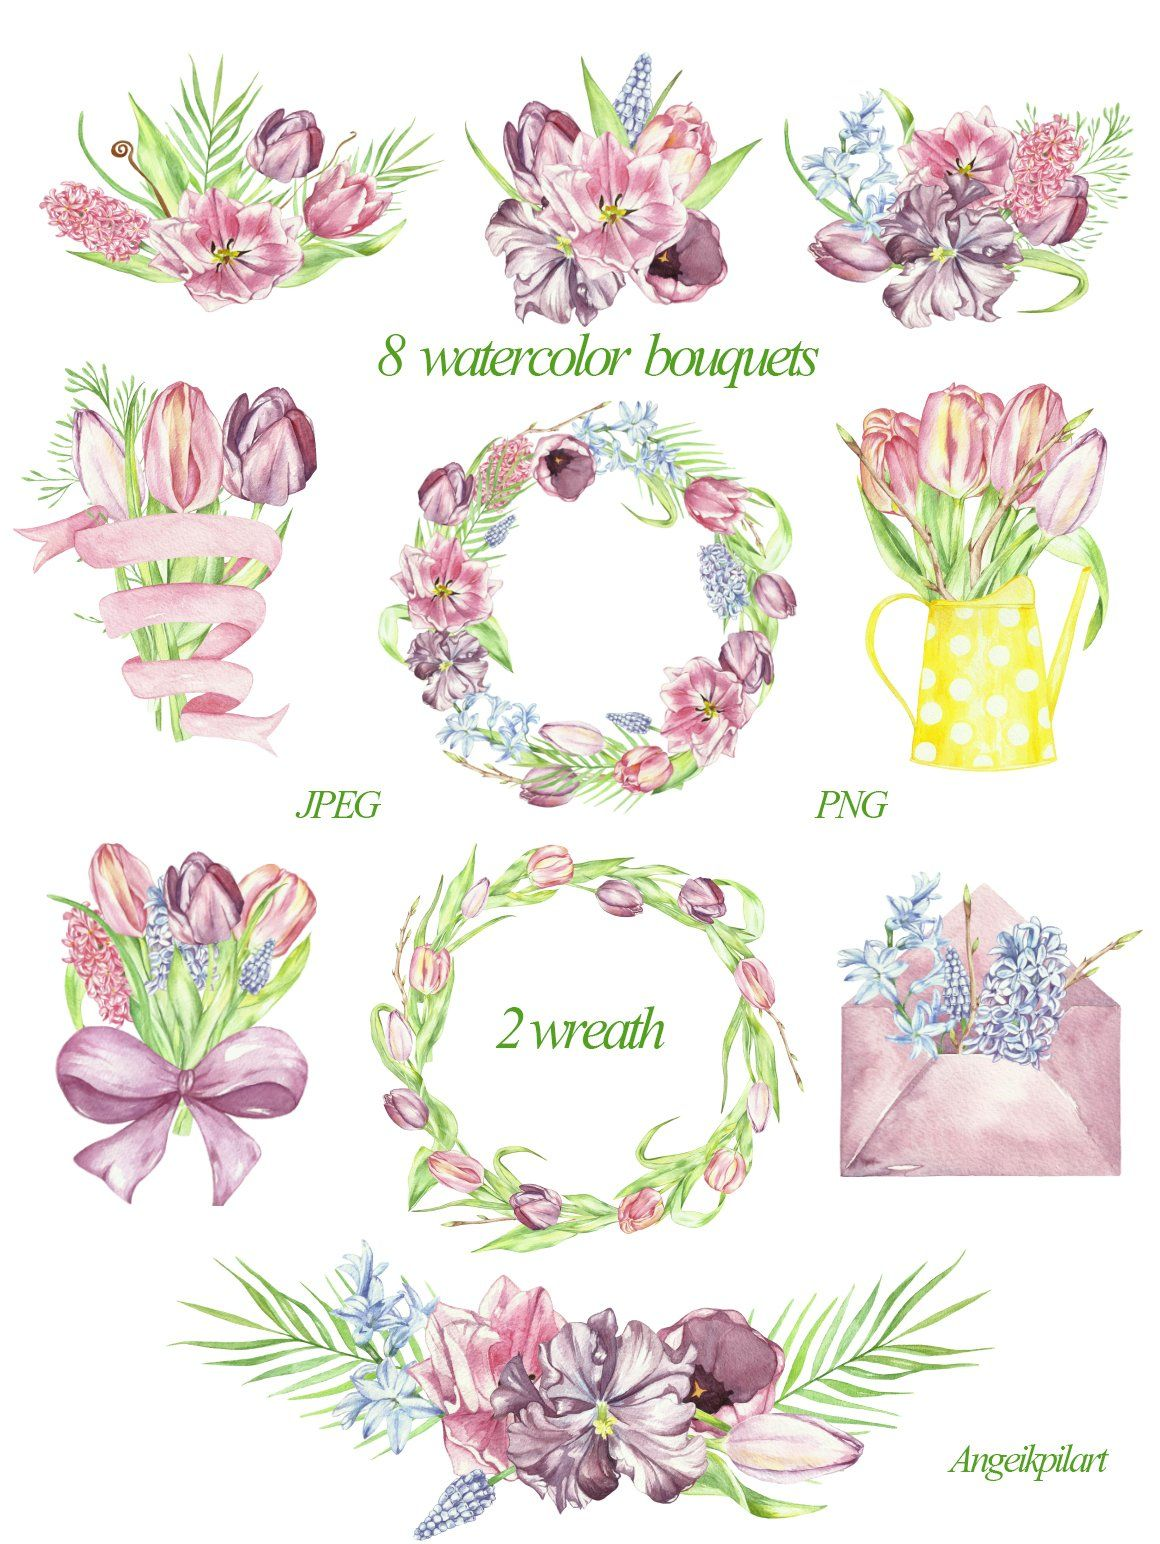 spring watercolor bouquets, wreath by angelikpilart on @creativemarket